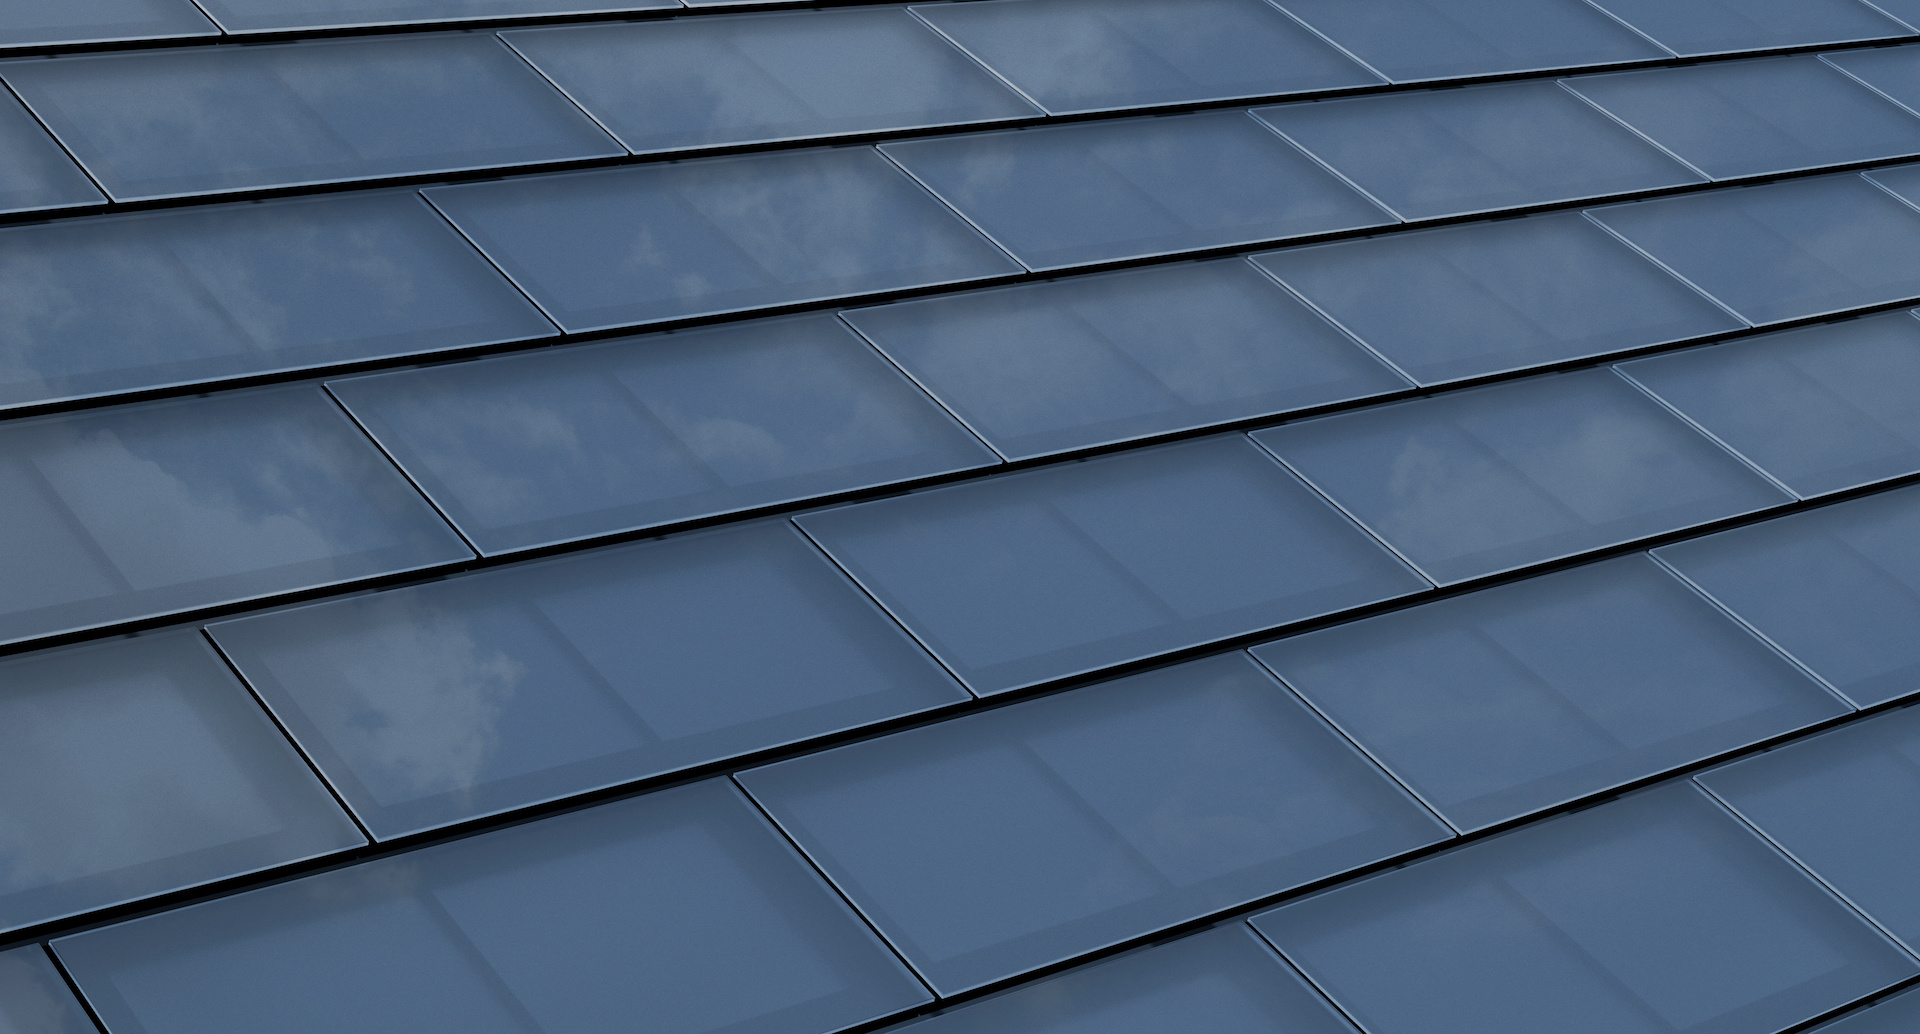 7 Recent Trends In High-End Roofing